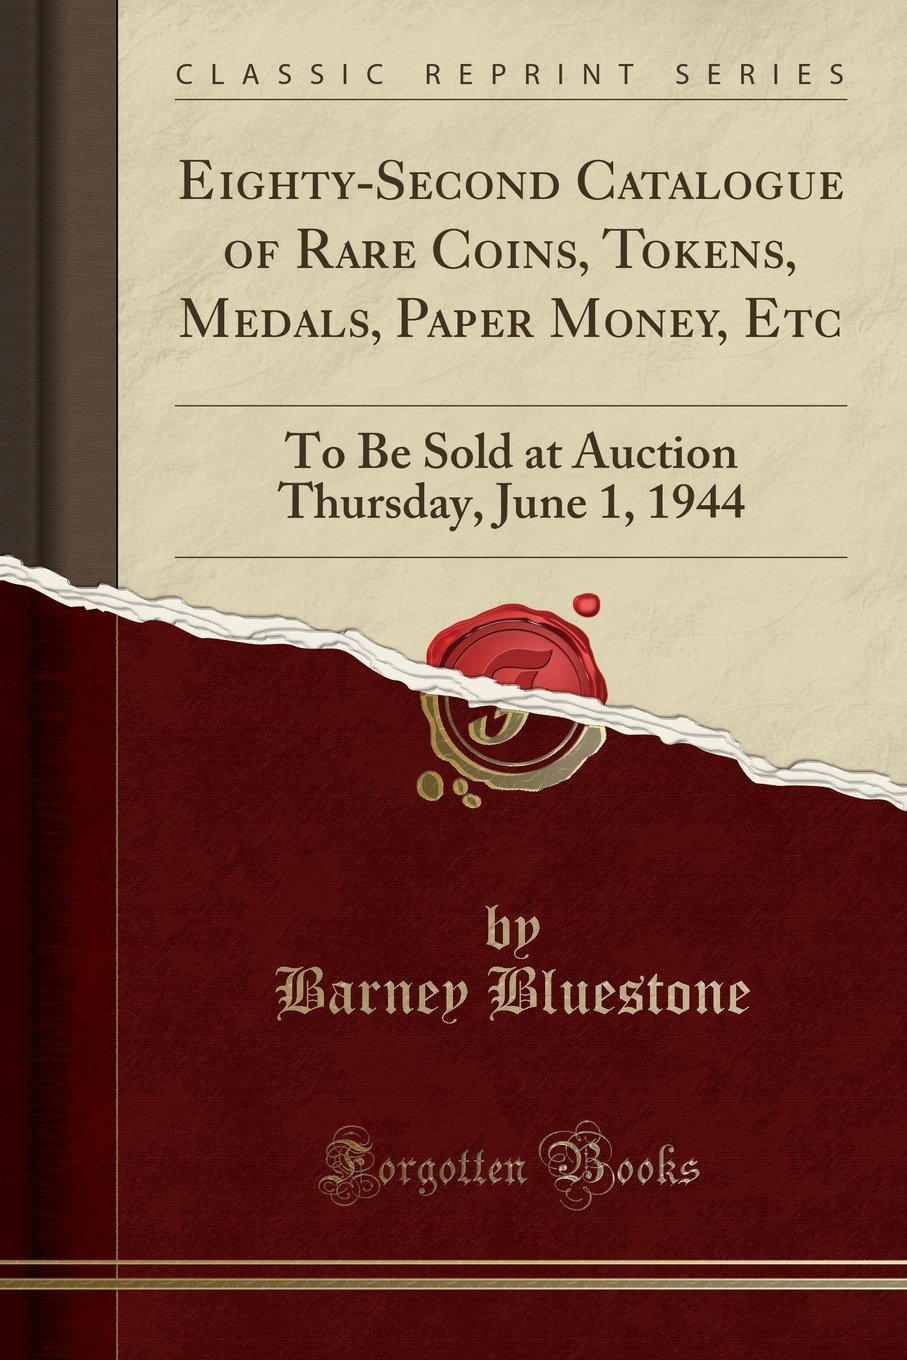 Download Eighty-Second Catalogue of Rare Coins, Tokens, Medals, Paper Money, Etc: To Be Sold at Auction Thursday, June 1, 1944 (Classic Reprint) pdf epub